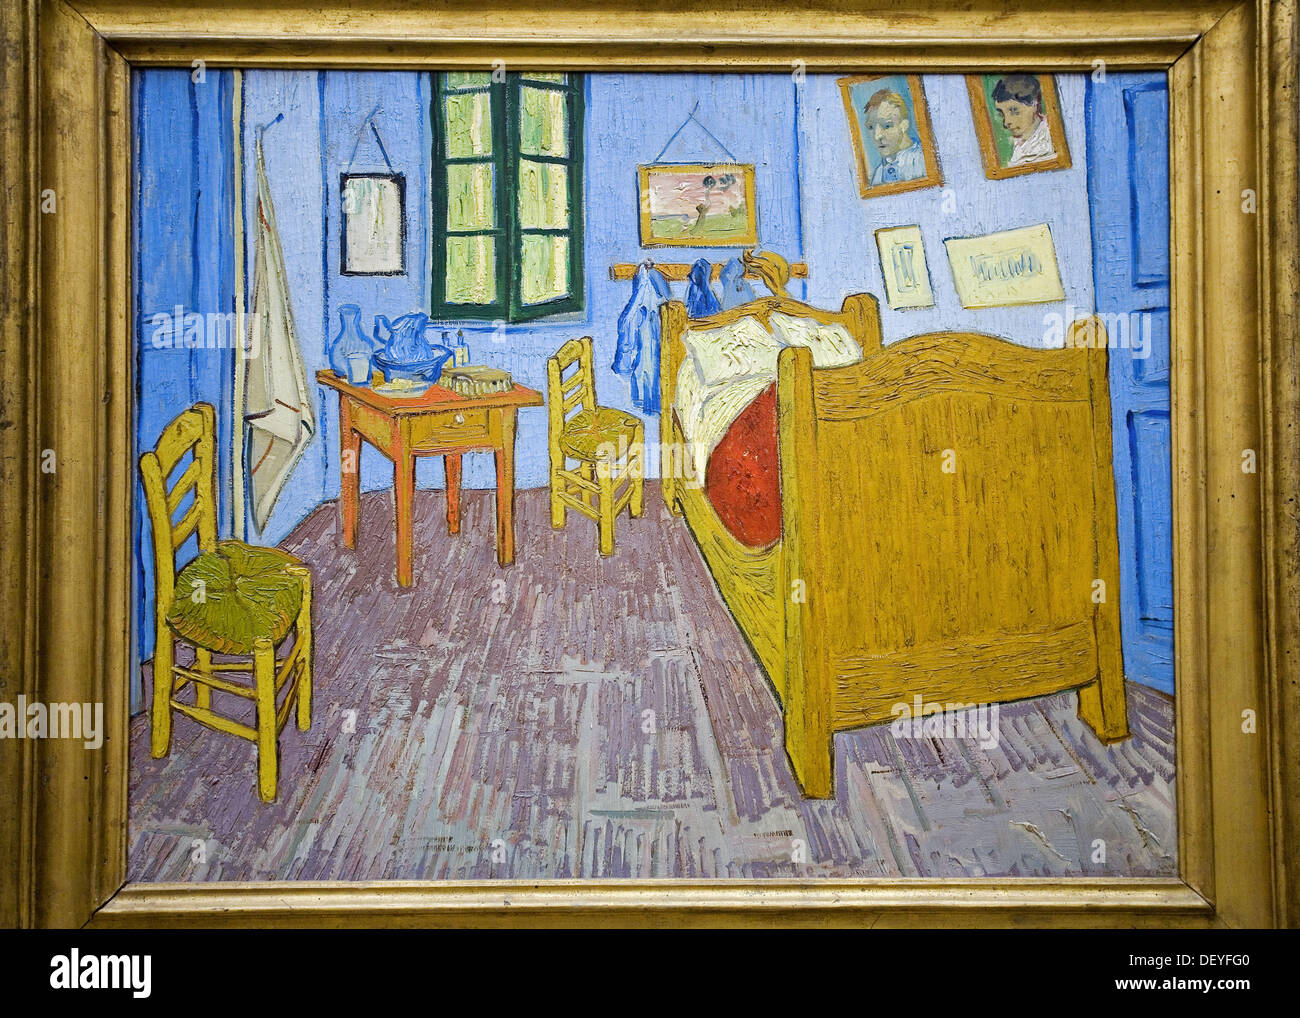 la chambre de van gogh a arles 1889 vincent van gogh orsay museum stock photo royalty free. Black Bedroom Furniture Sets. Home Design Ideas